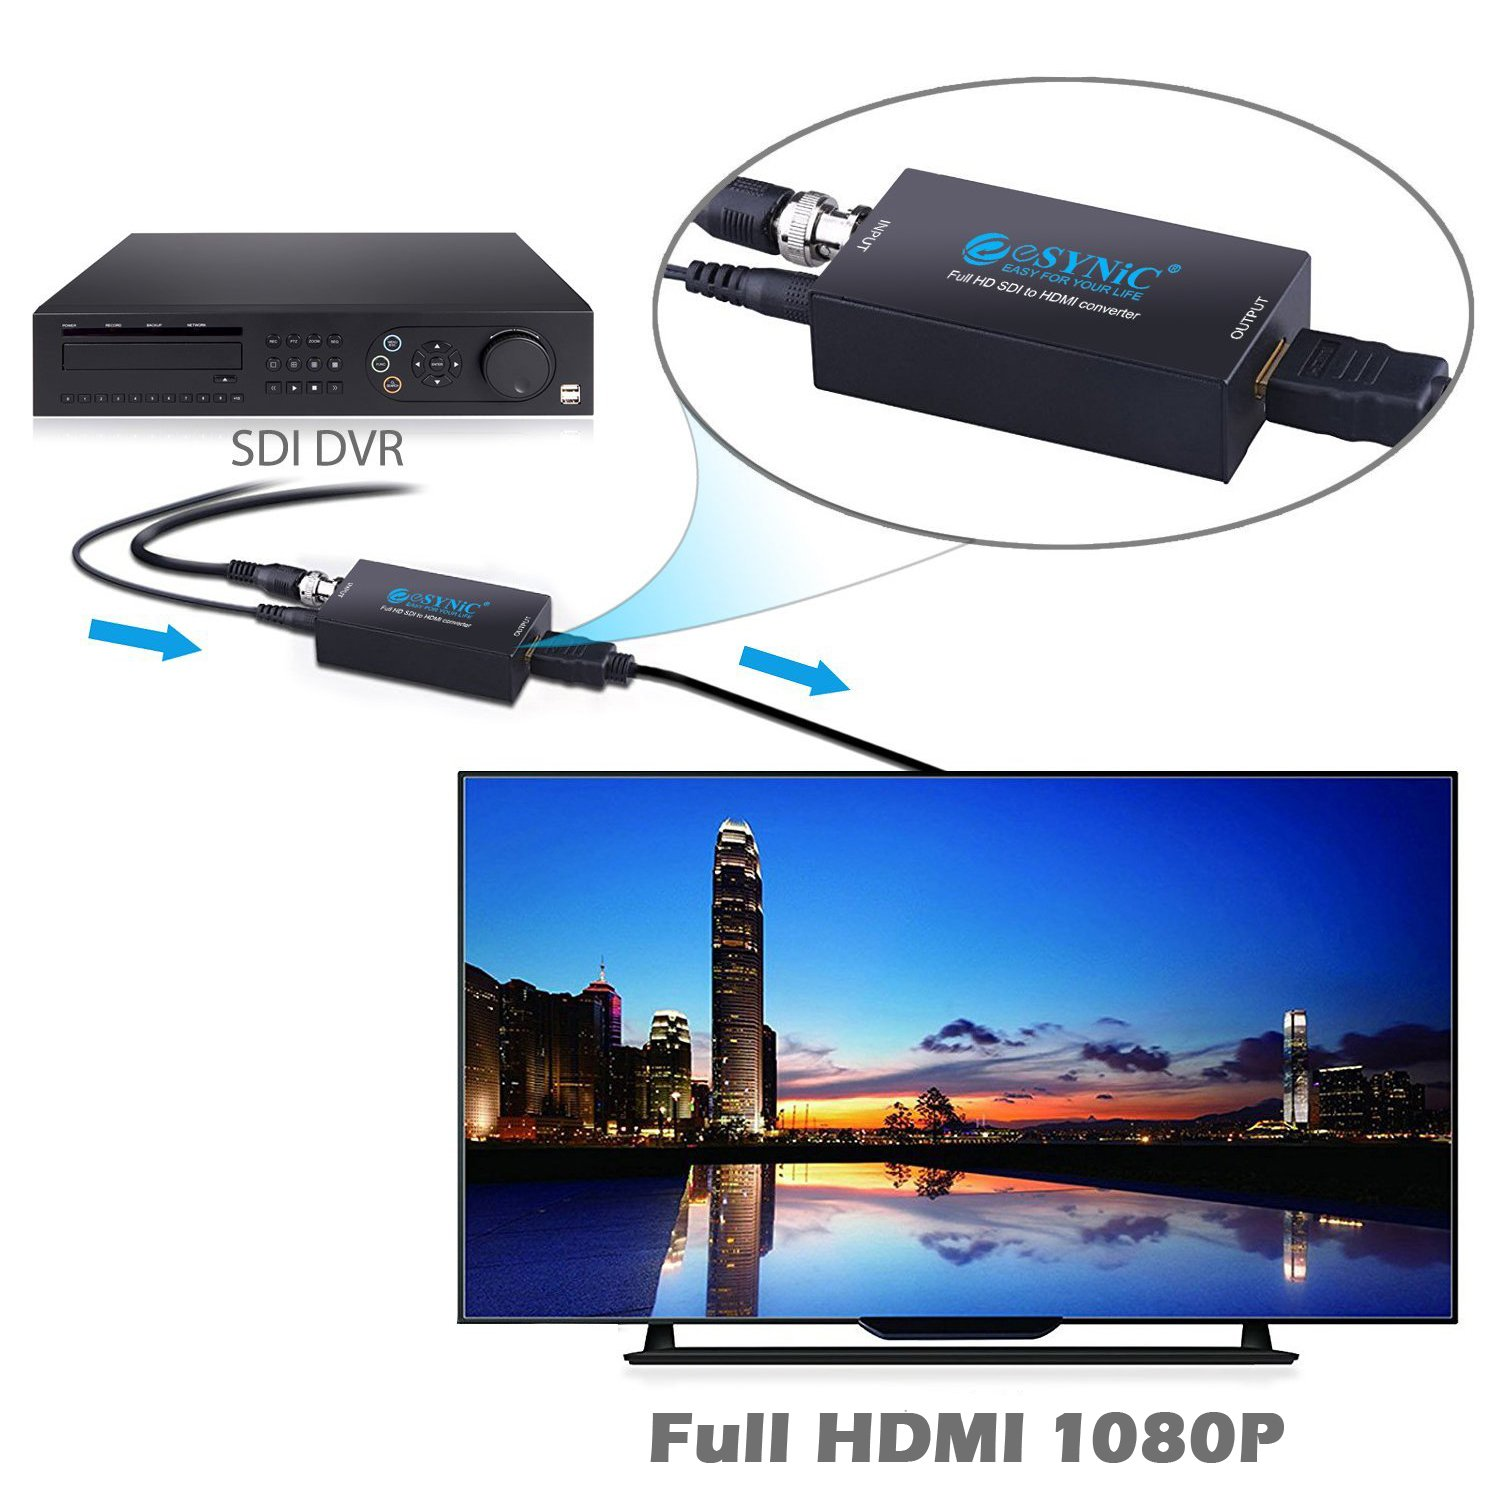 Esynic Sdi To Hdmi Converter Mini 3g Adapter Driver Sending Signals Over A Coaxial Cable Electrical Engineering Full Hd 1080p Hdtv Audio Supports Sd And Display On Monitor Electronics